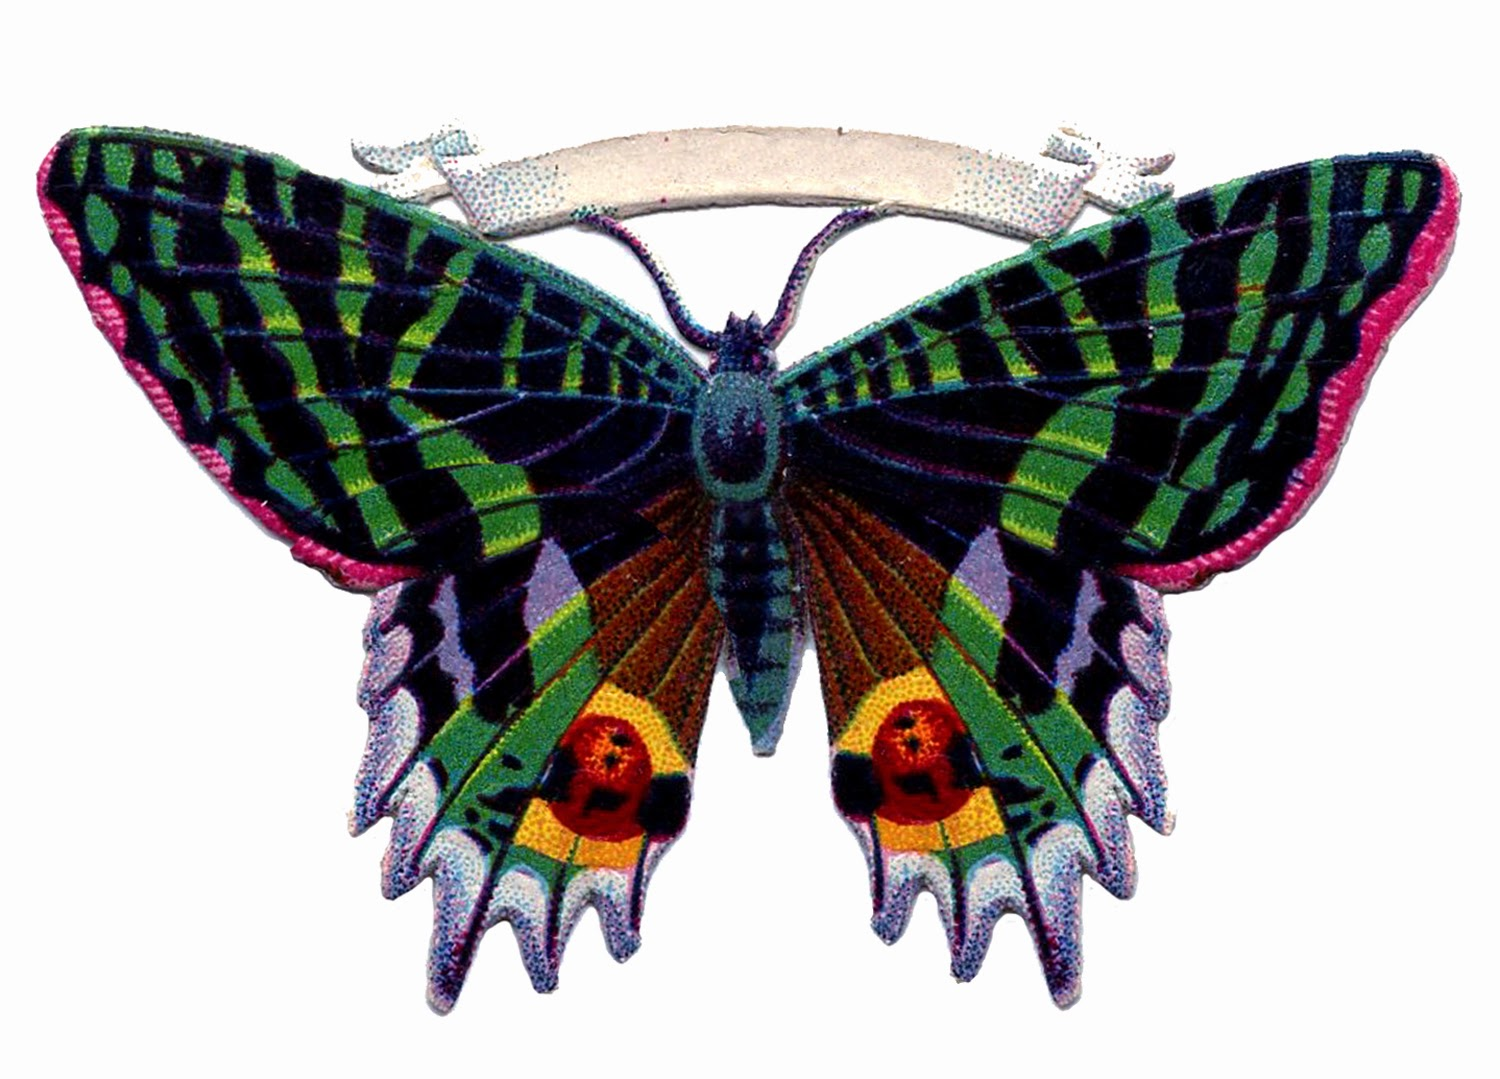 the end time exalting the of jesus through essays on vintage butterfly drawing the graphics fairy